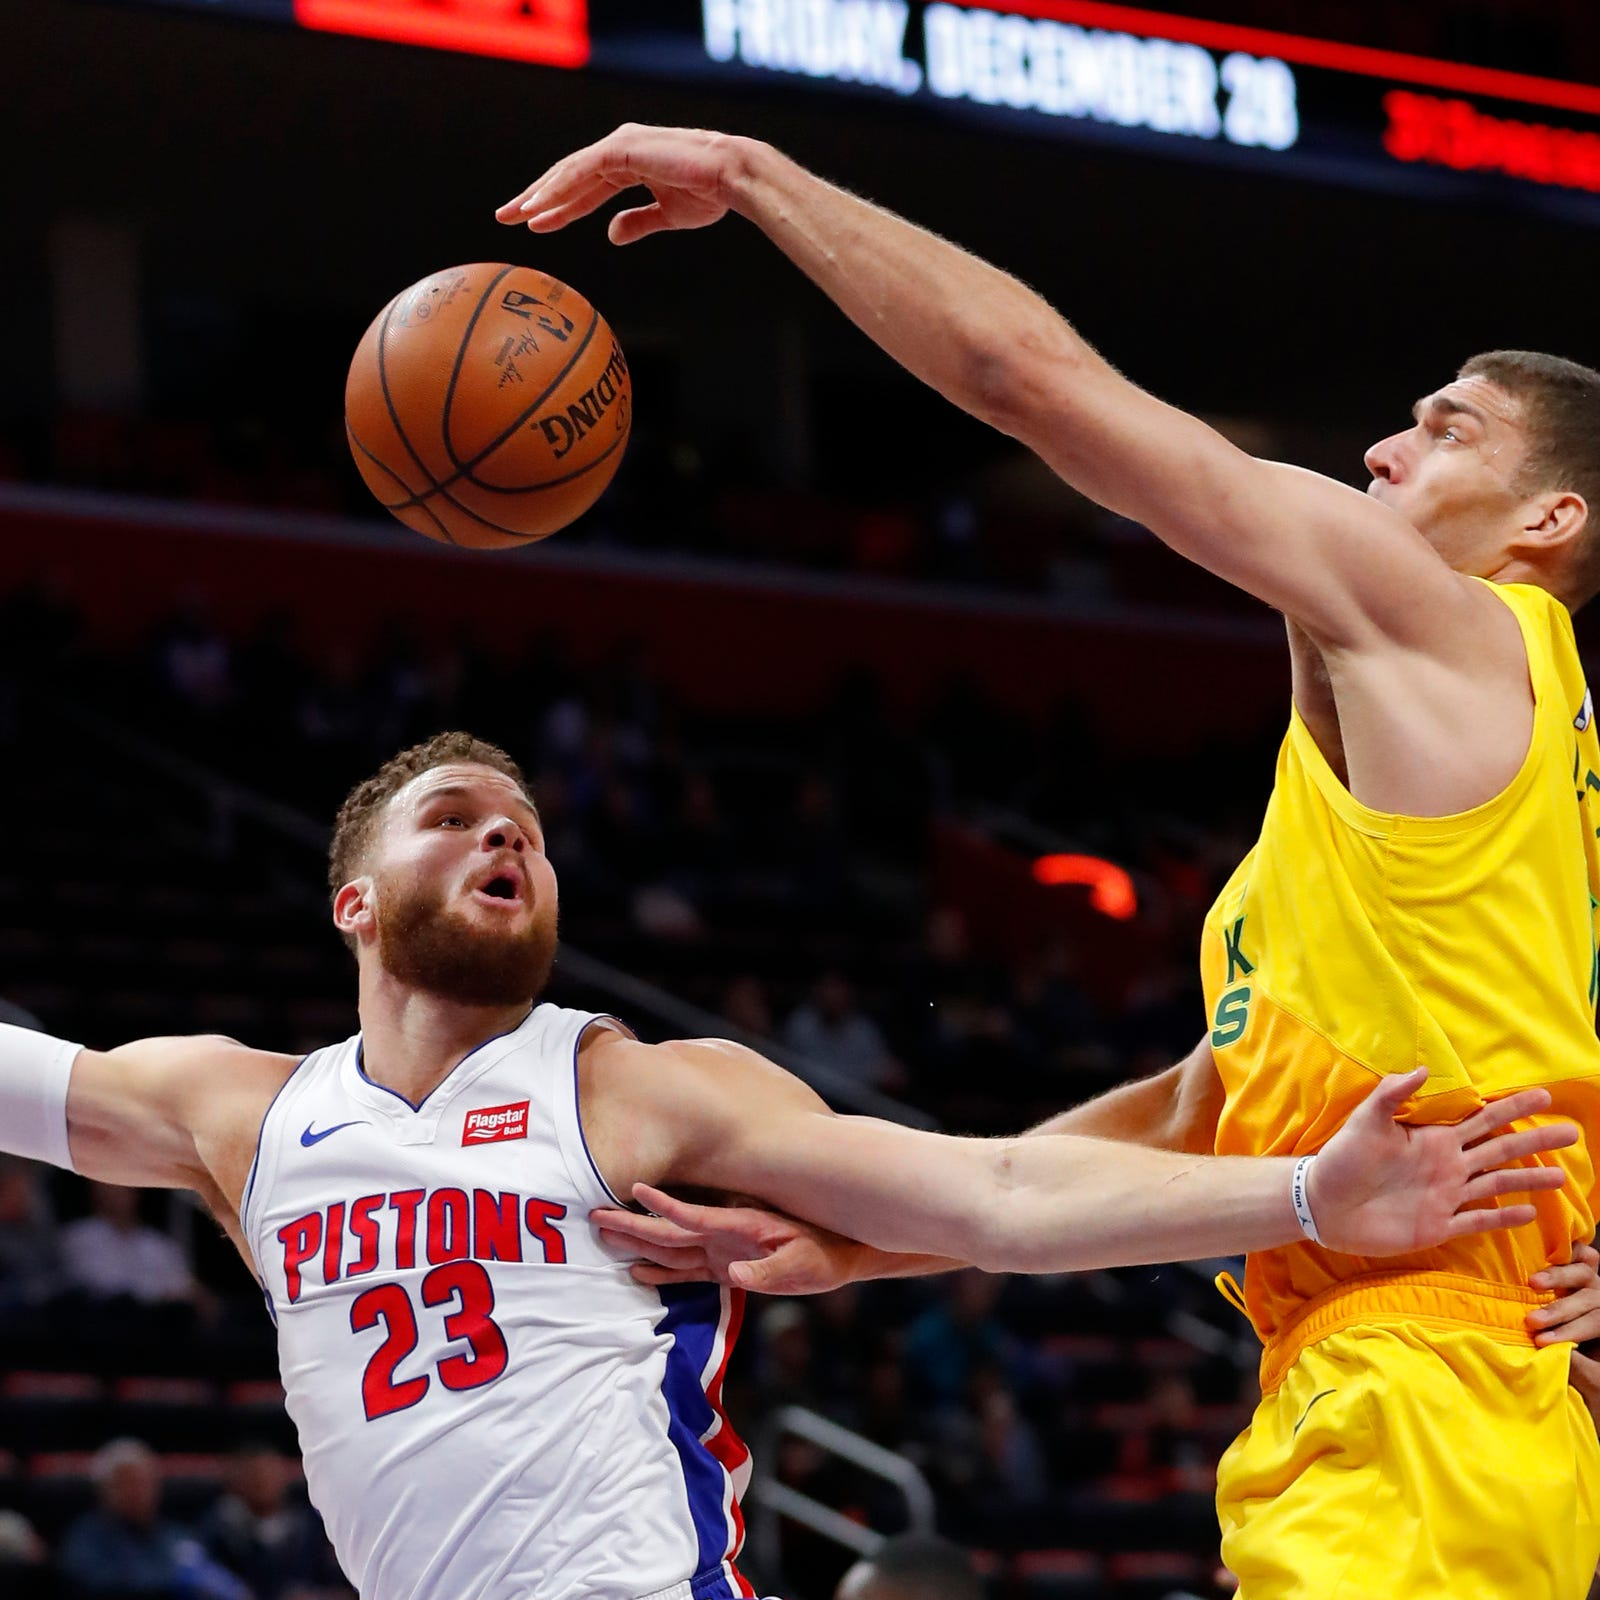 Pistons' Blake Griffin on turnovers: 'I was unbelievably bad' in loss